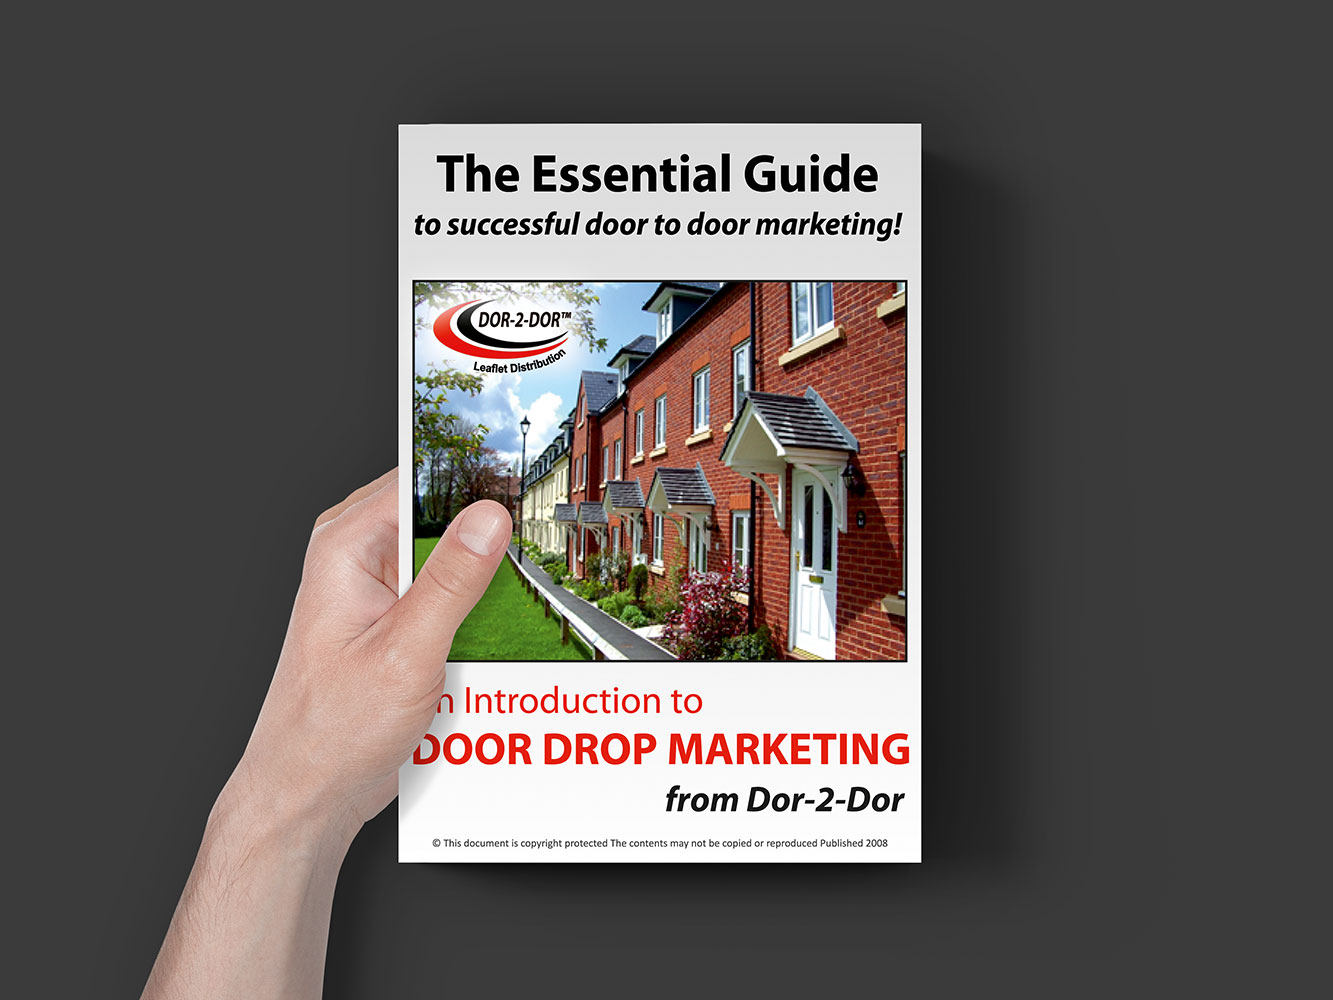 Essential FREE Guide to Successful Door Drop Marketing